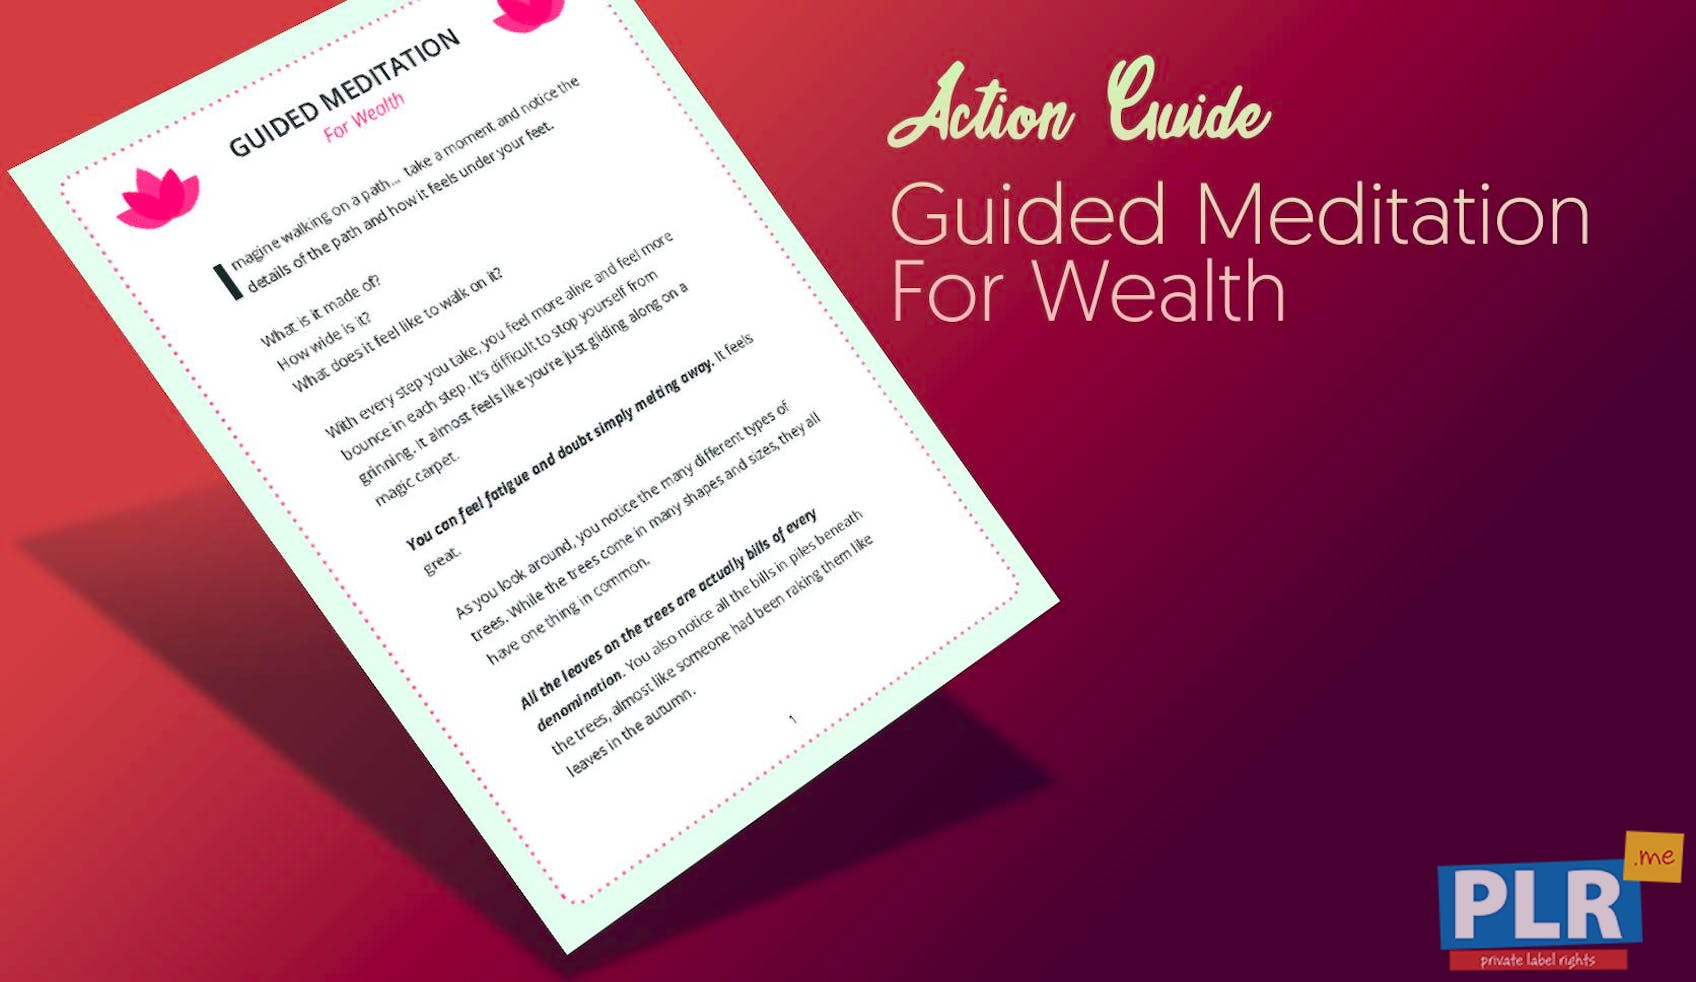 Guided Meditation For Wealth